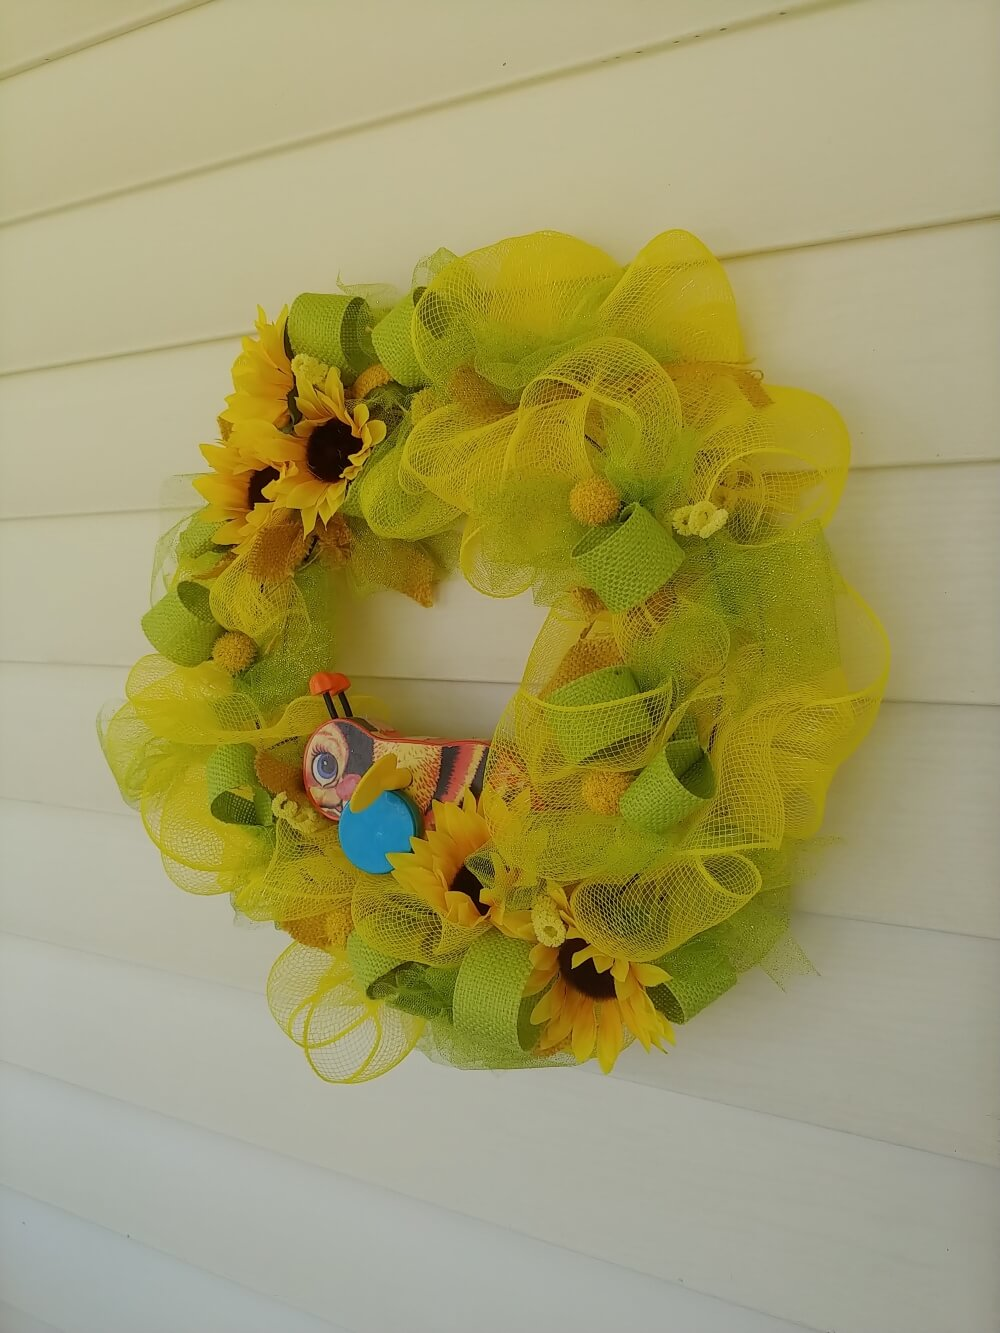 Vintage Fisher-Price Bumble Bee Wreath